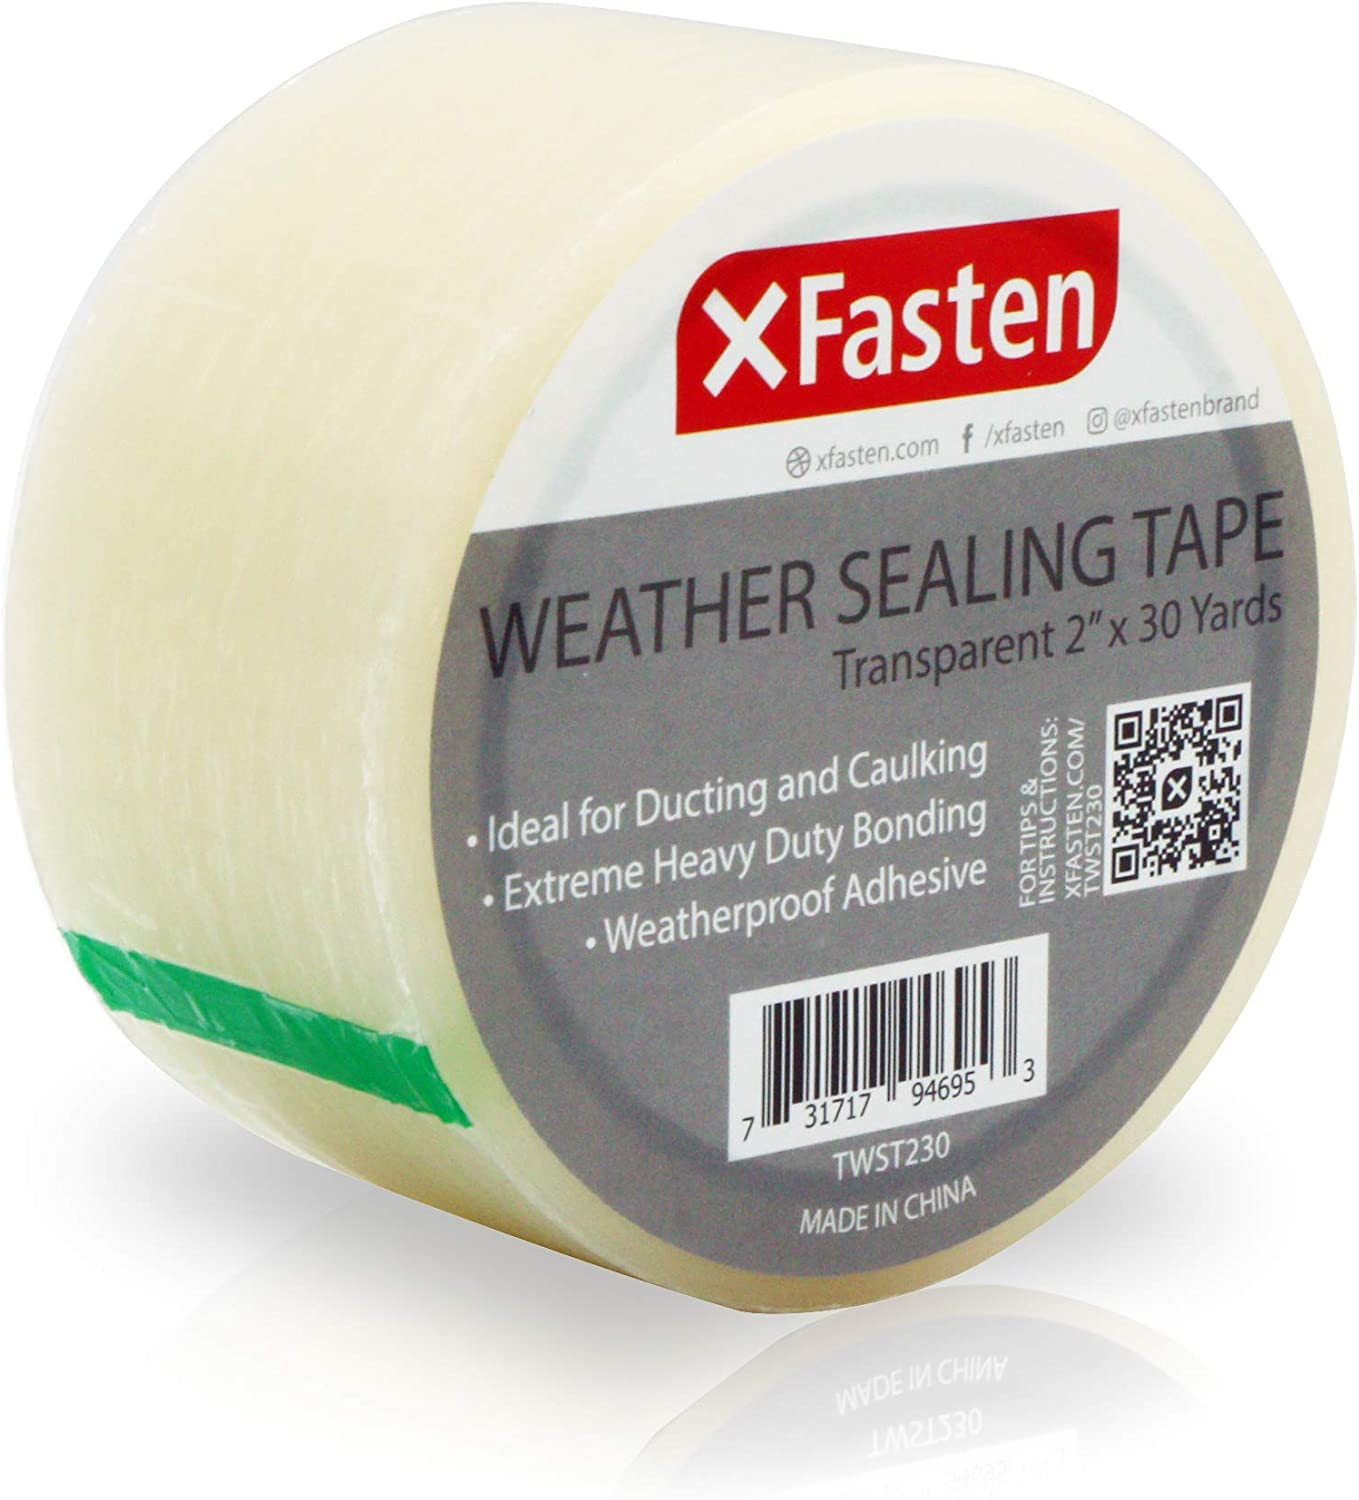 XFasten Transparent Window Weather Sealing Tape, 2-Inch x 30 Yards, Clear Window Draft Isolation Sealing Film Tape, No Residue